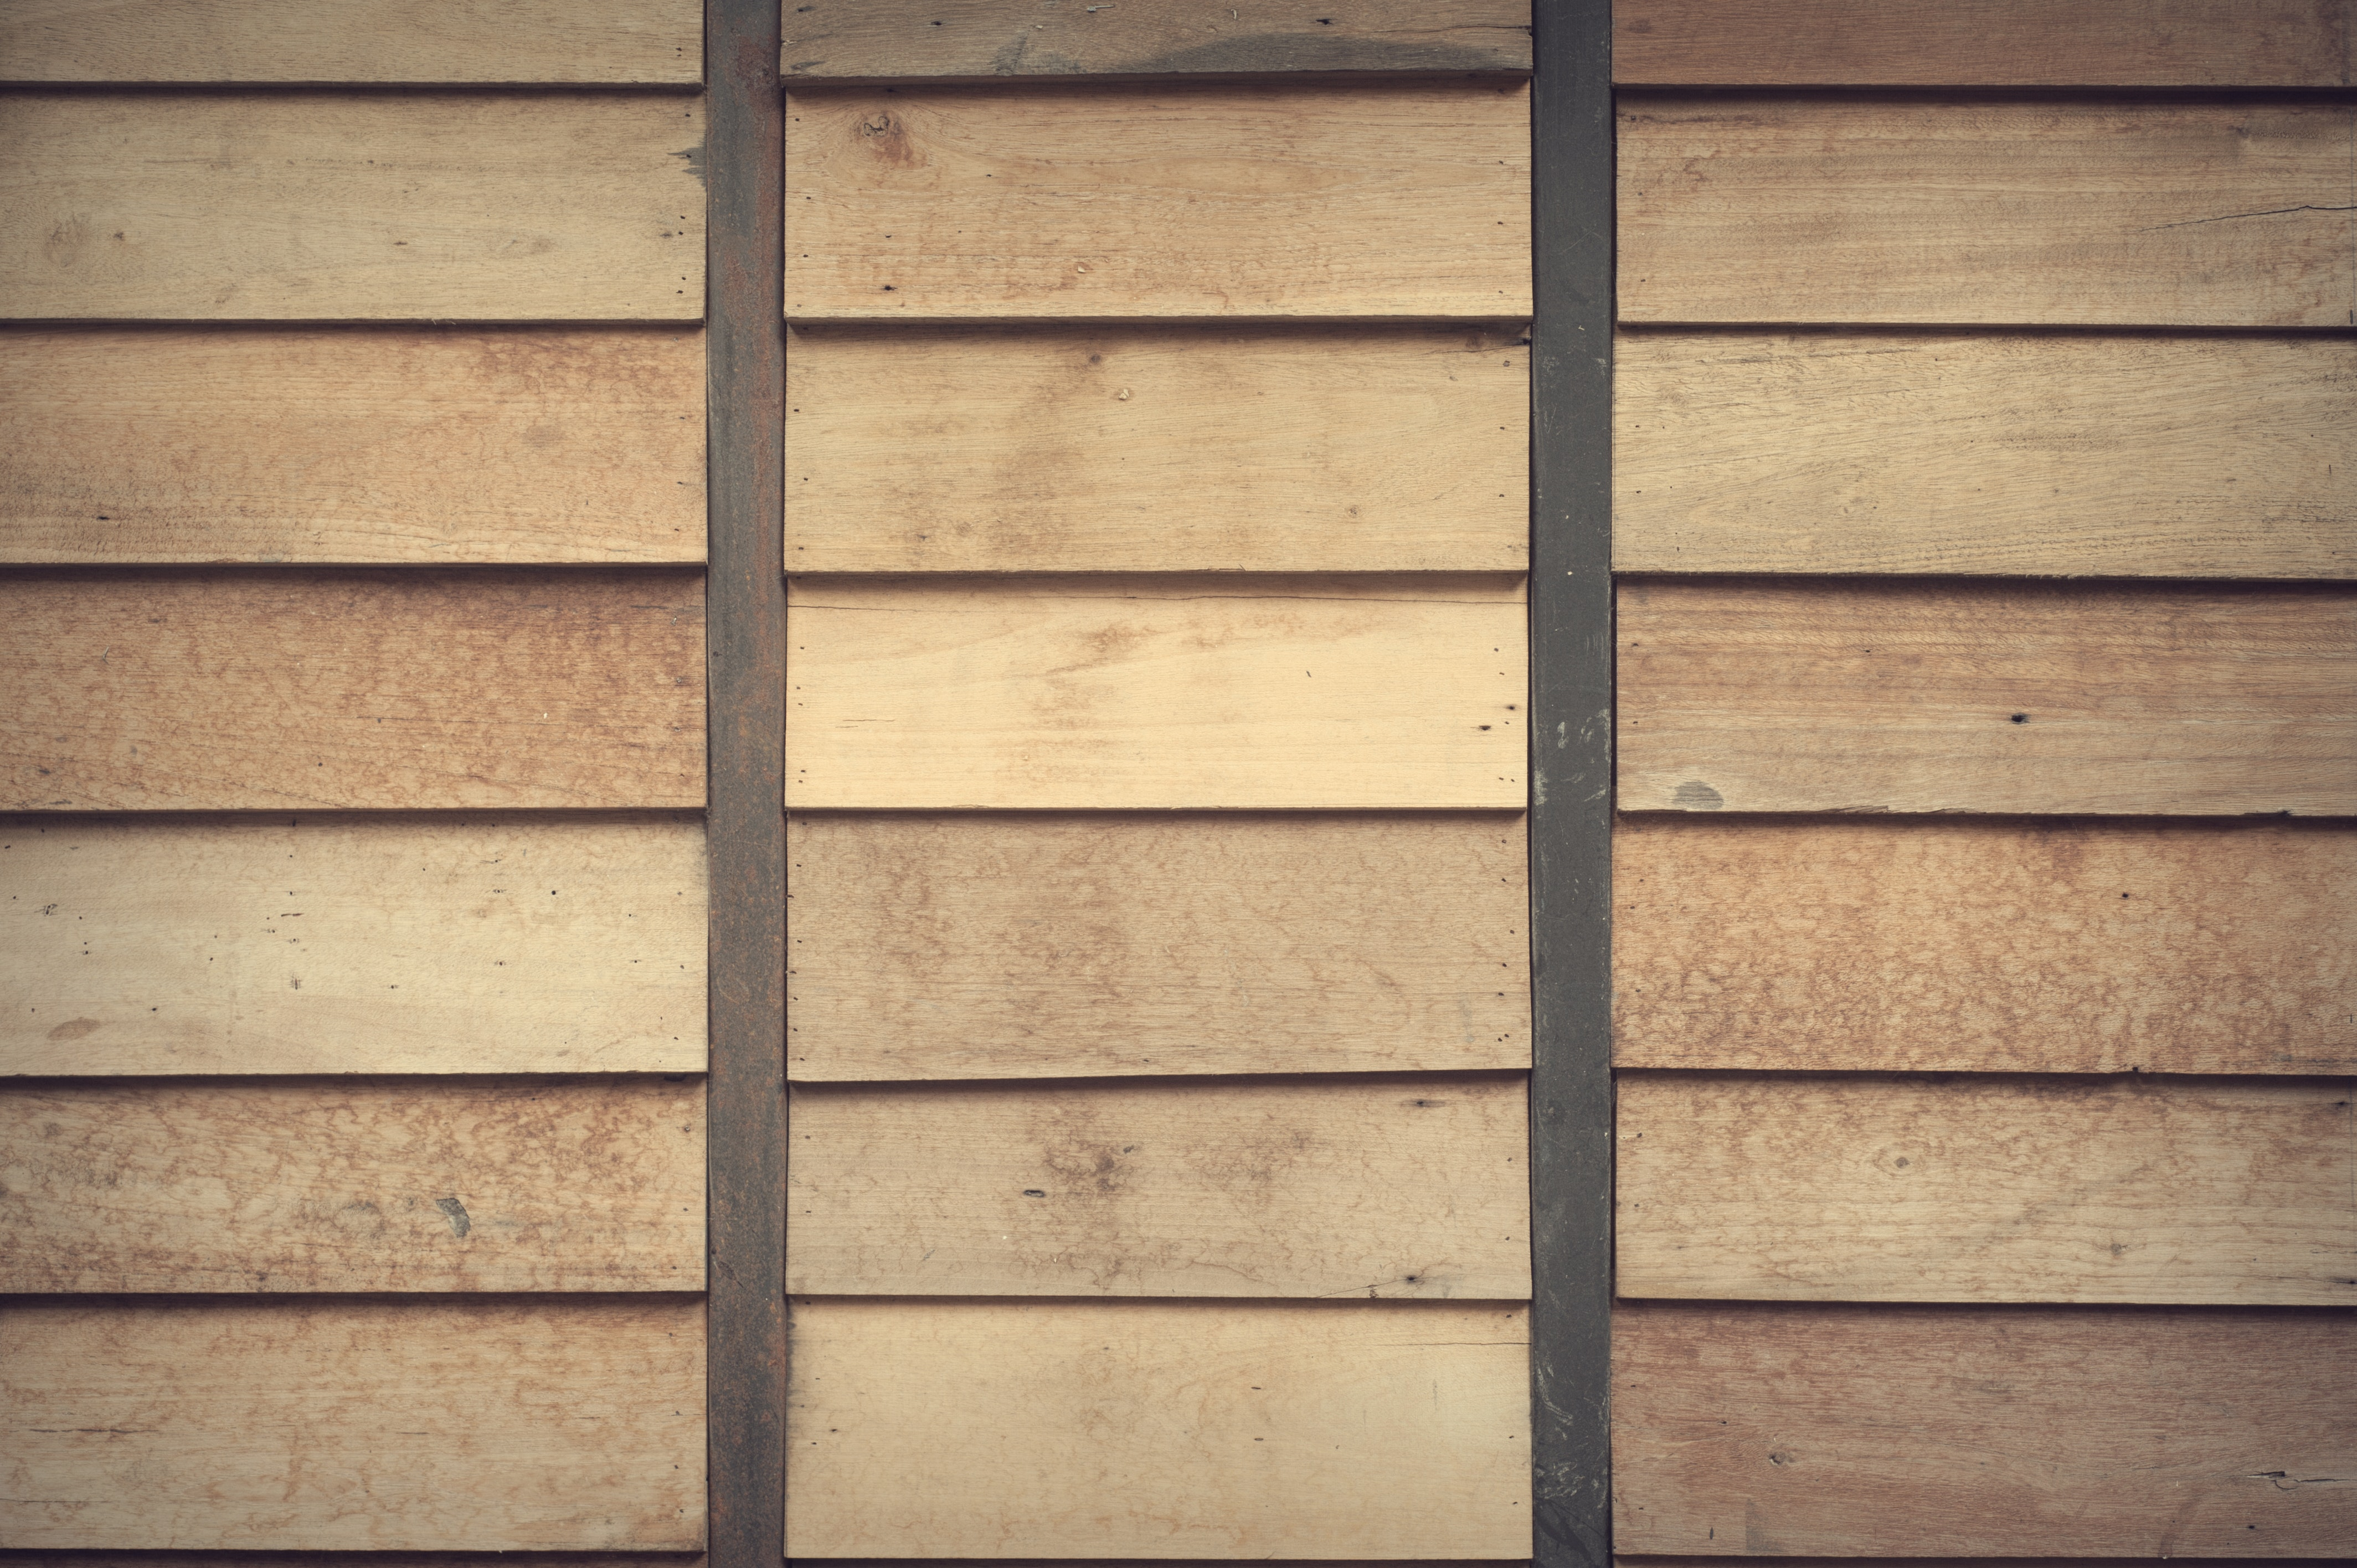 green wooden fence free stock photo. Black Bedroom Furniture Sets. Home Design Ideas